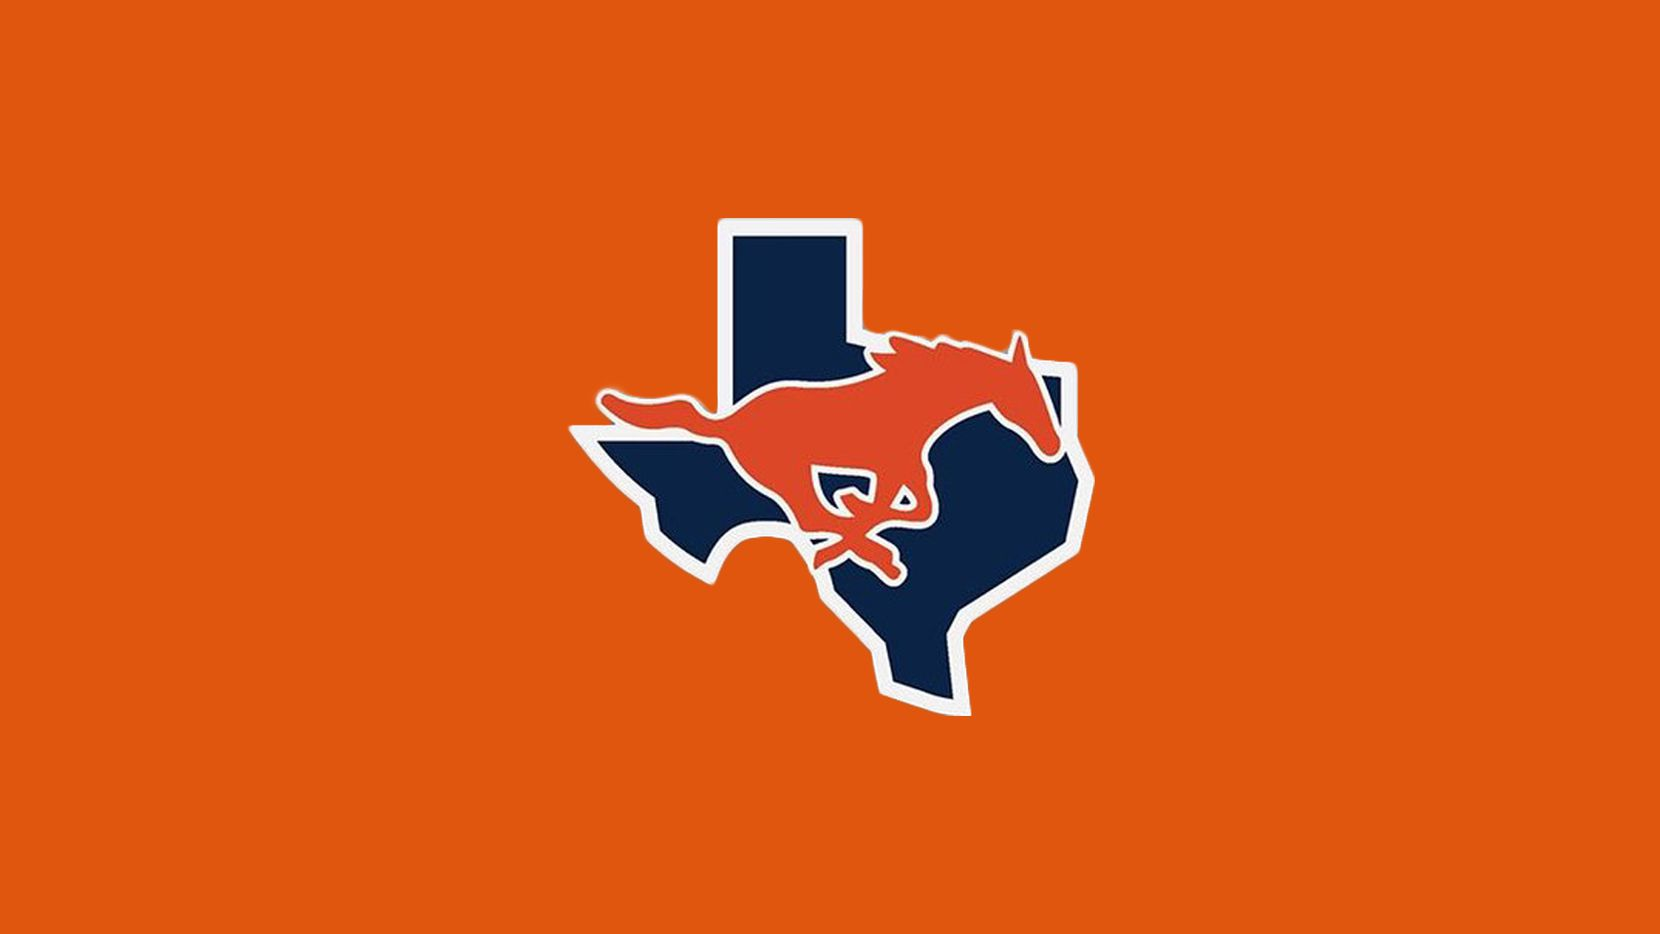 Sachse High School's logo.